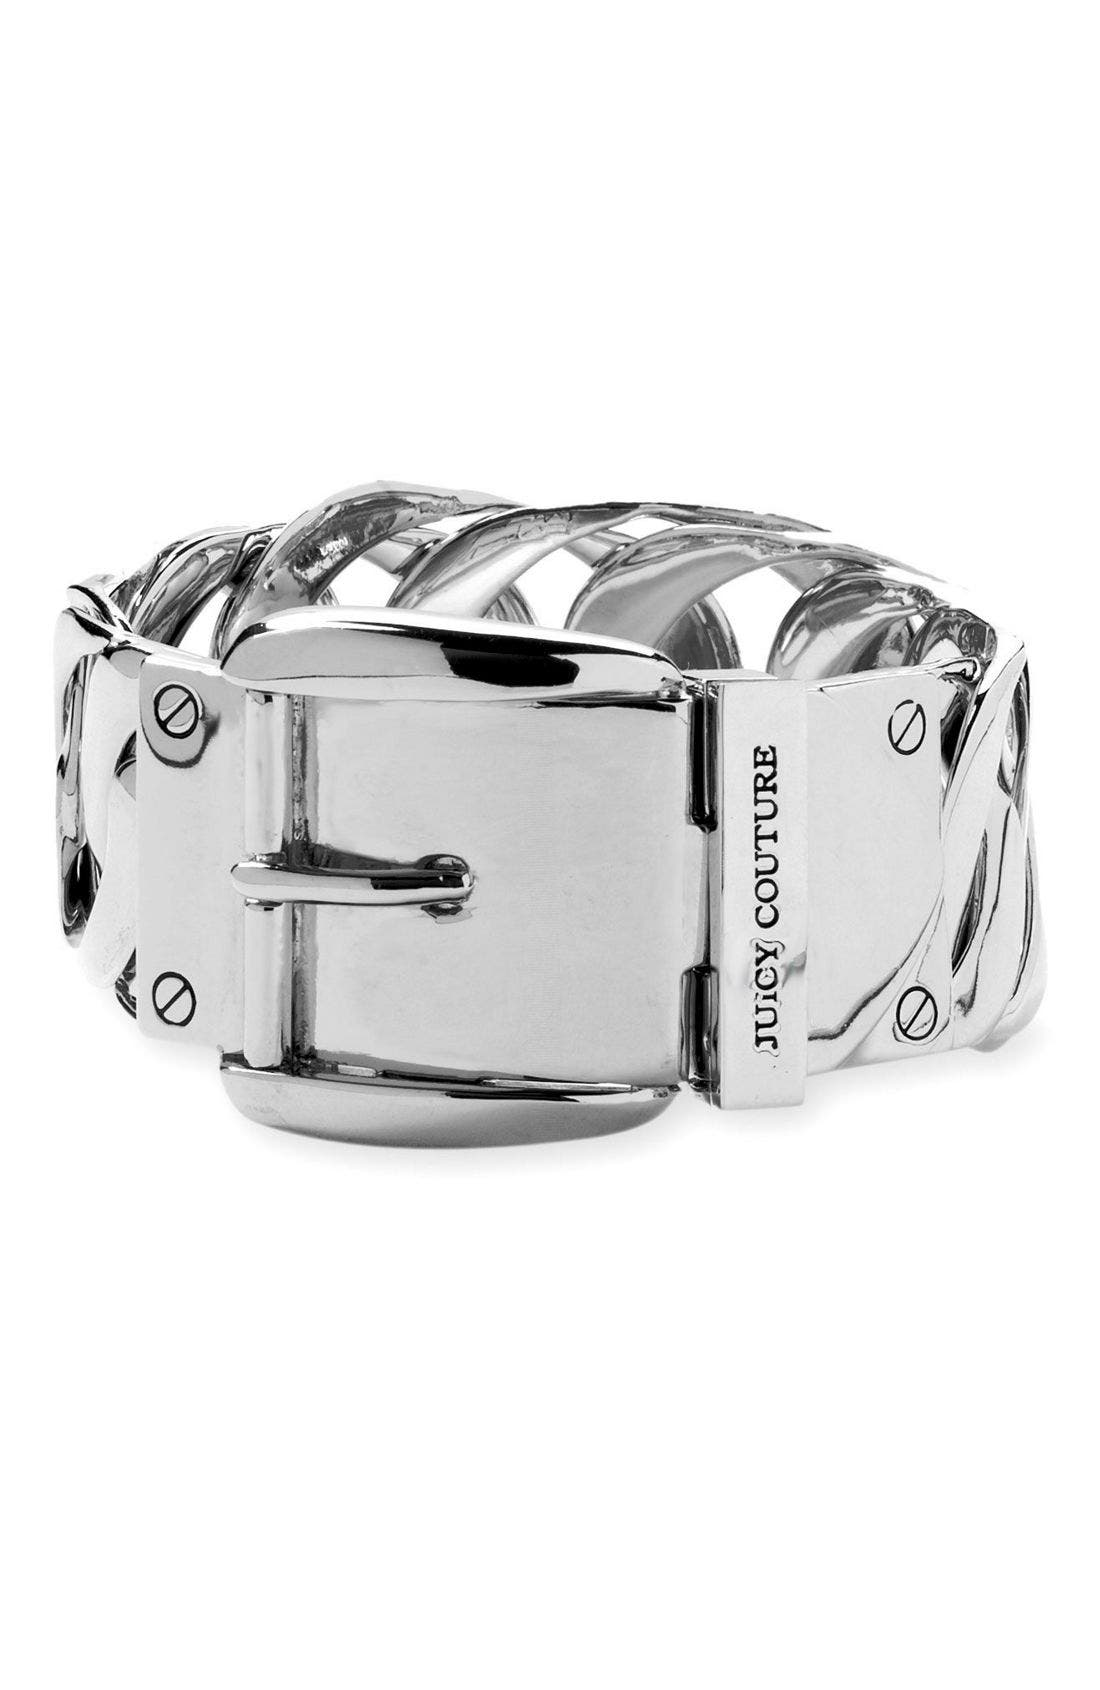 Buckle Bracelet,                             Main thumbnail 1, color,                             040